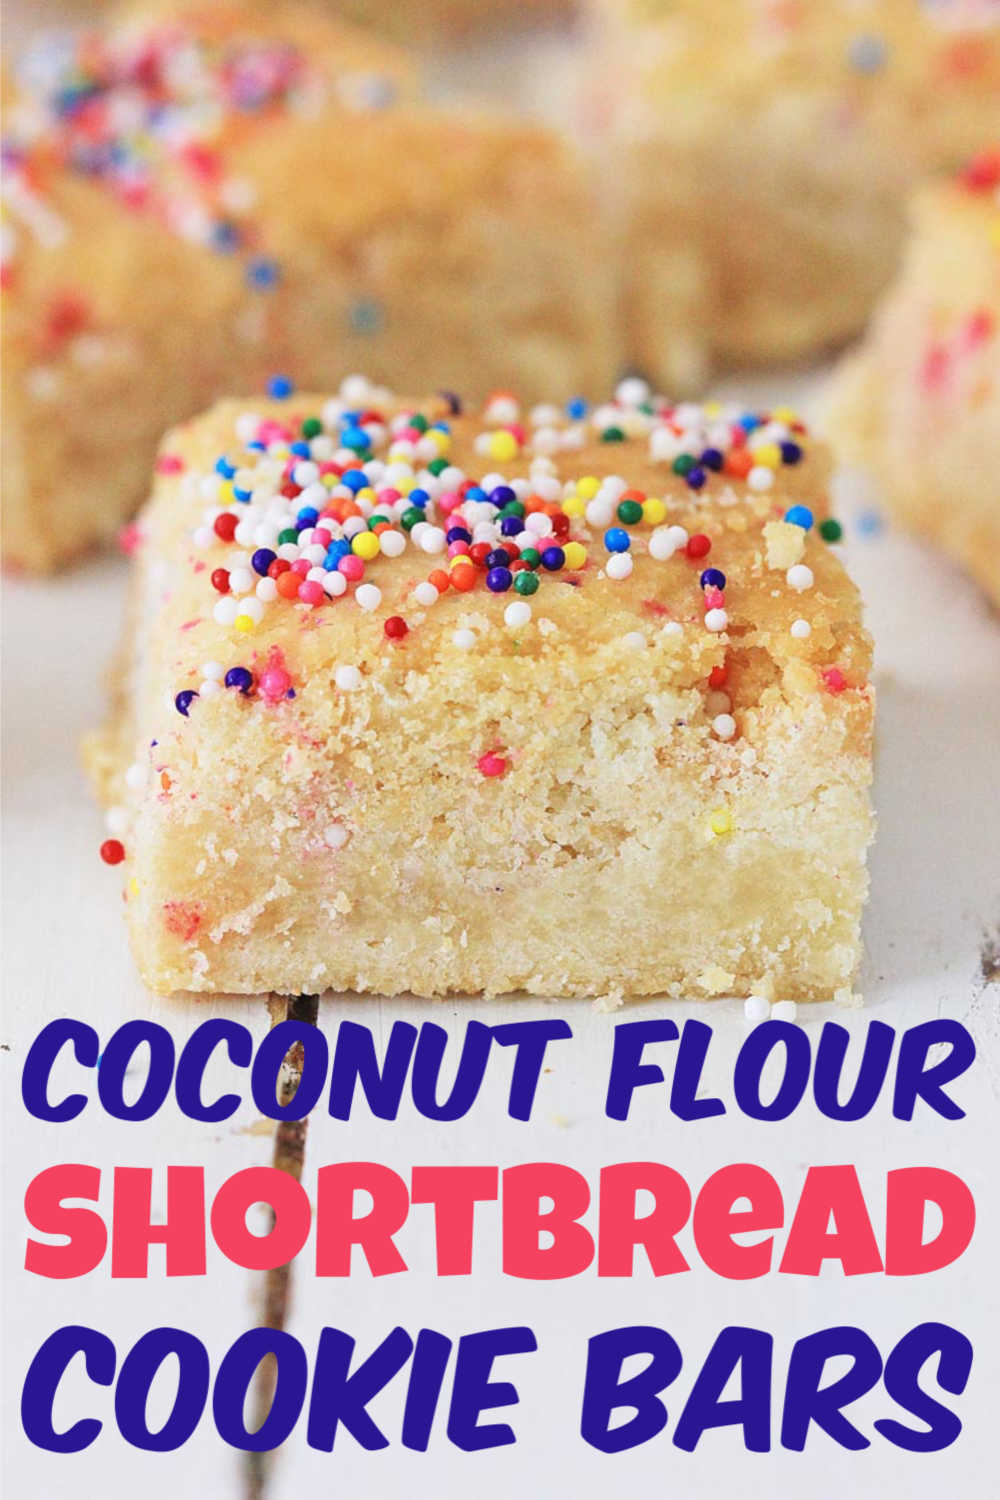 Coconut Flour Shortbread Cookie Bars are gluten free and DELISH! These are easy to whip up and will knock the socks off your guests. Sprinkle the top with candies to brighten up this classic recipe! #shortbread #shortbreadcookies #glutenfree